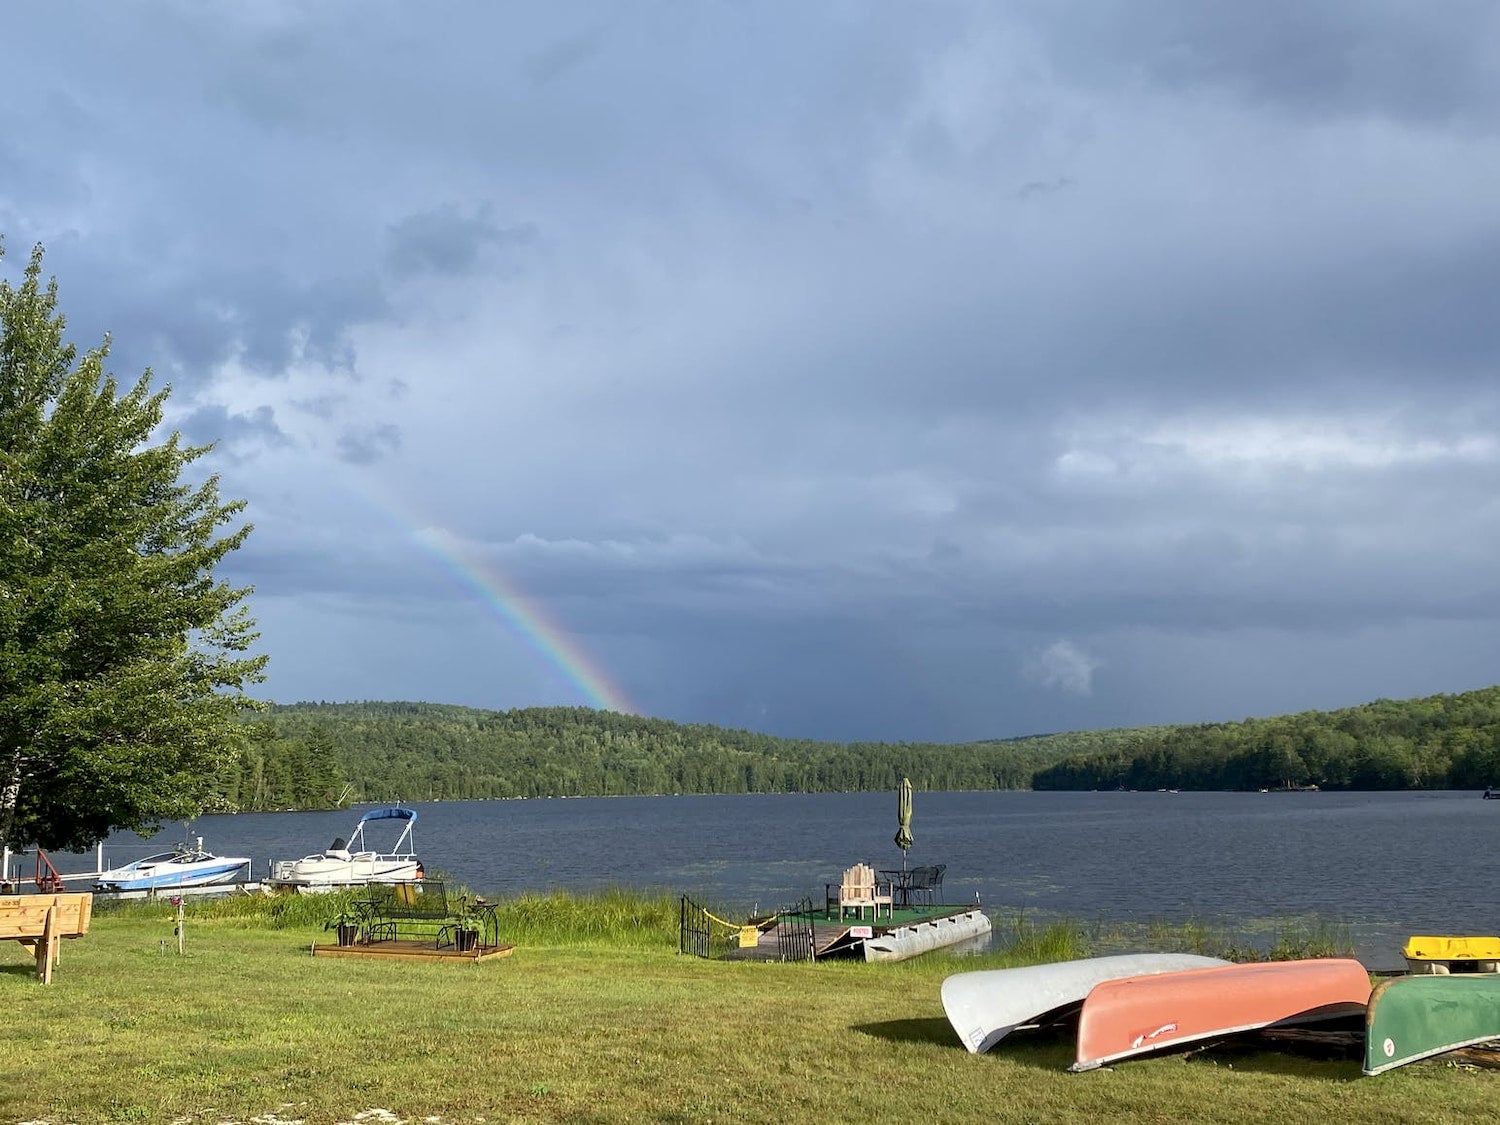 upside down canoes next to water with rainbow in the background